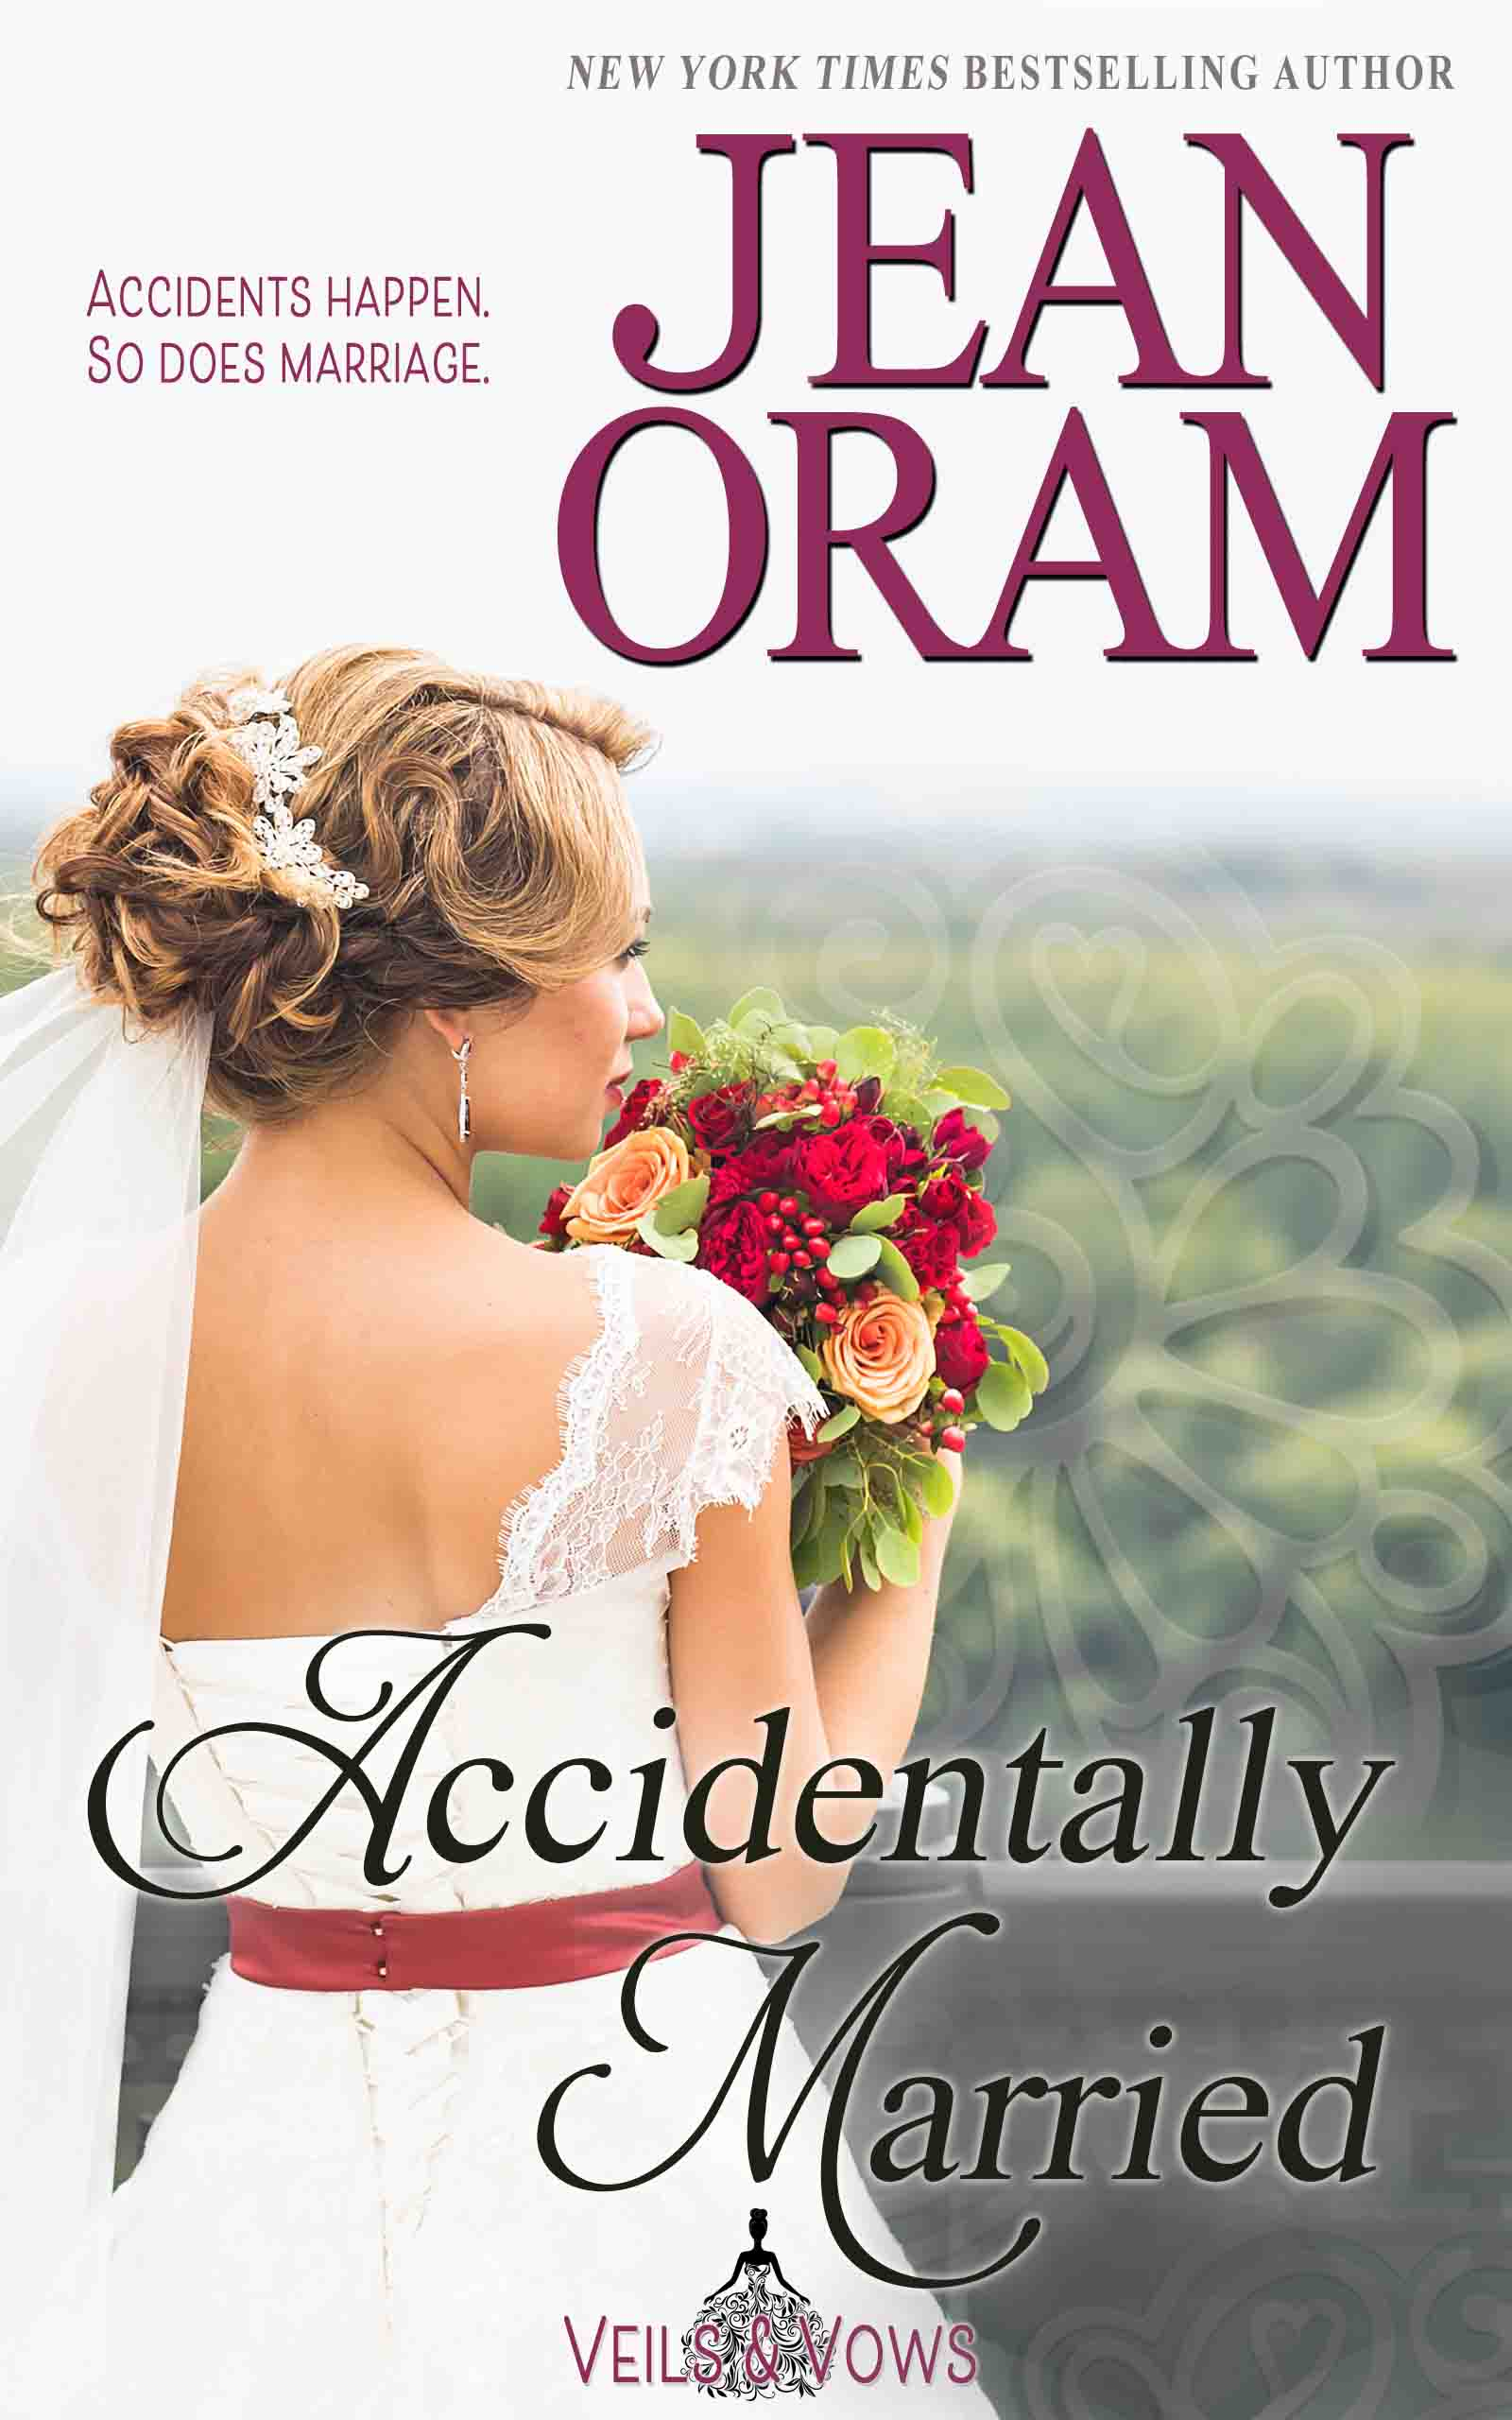 Accidentally Married by Jean Oram